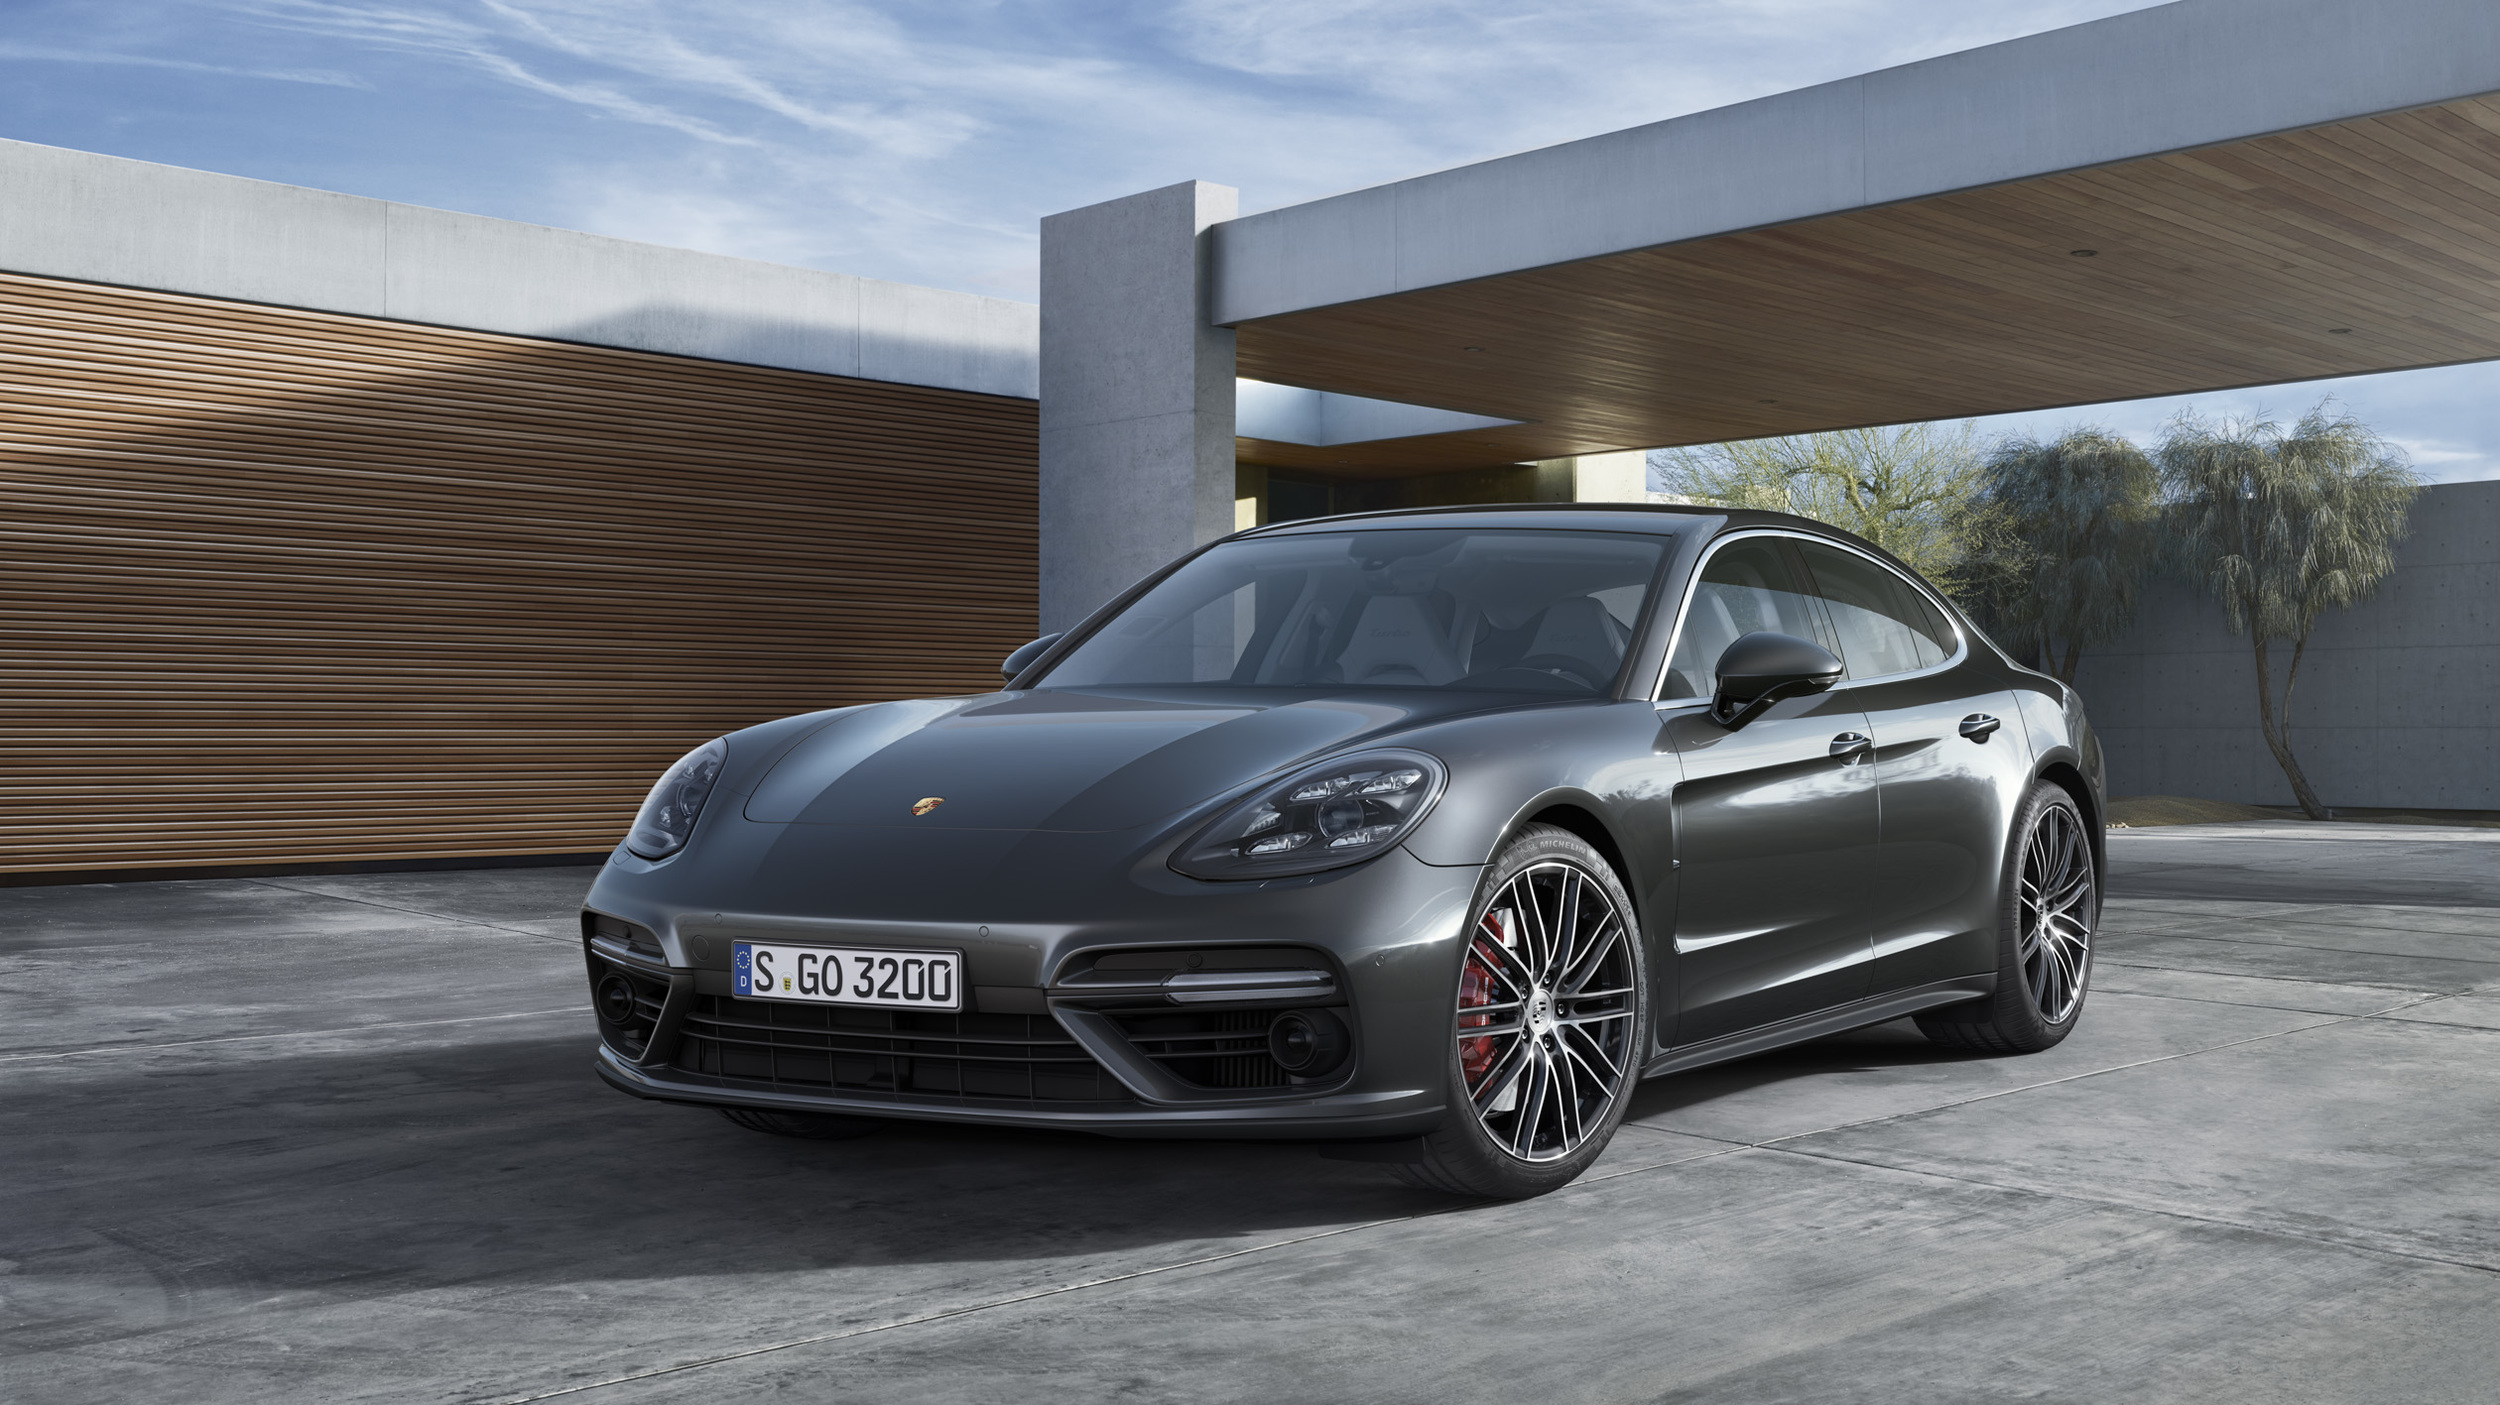 2017 Porsche Panamera Finally Stands For The Four Door 911 We Ve Always Wanted